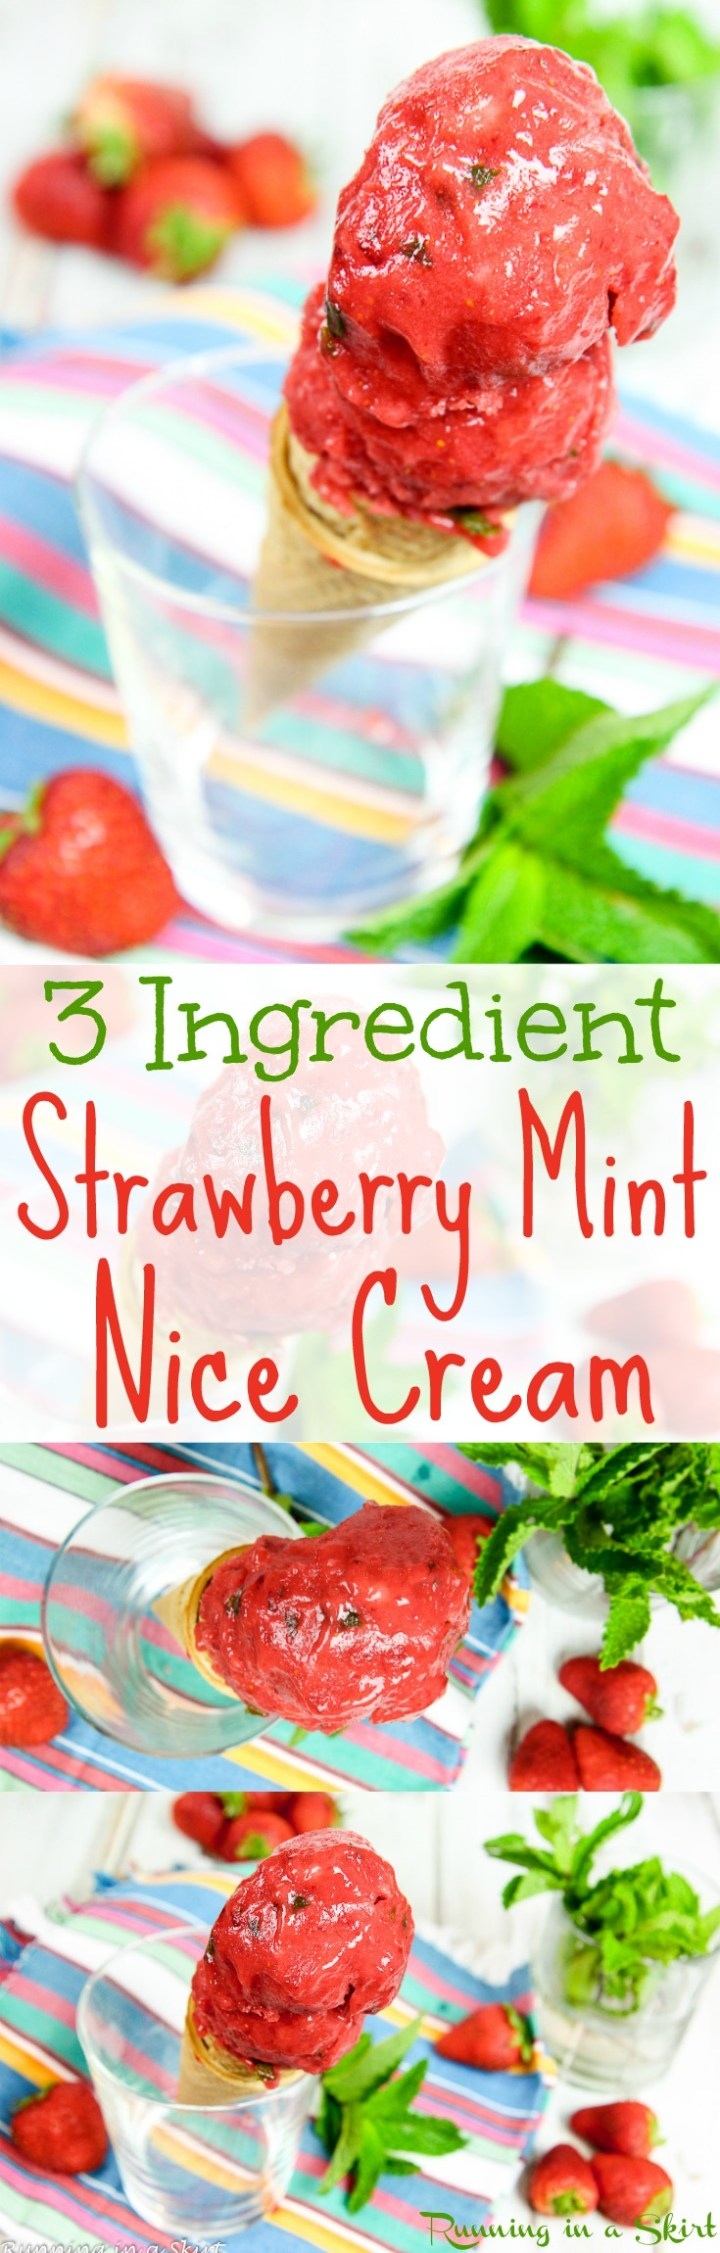 3 Ingredient Vegan Strawberry Nice Cream recipe with mint!  This healthy fruit based treat is totally clean eating and free of added sugar.  It's perfect as simple summer desserts or guilt-free sweet treats.  This is an easy homemade recipe that is frozen banana free!  Dairy-free, gluten-free, vegetarian and does not require an ice cream maker. / Running in a Skirt via @juliewunder